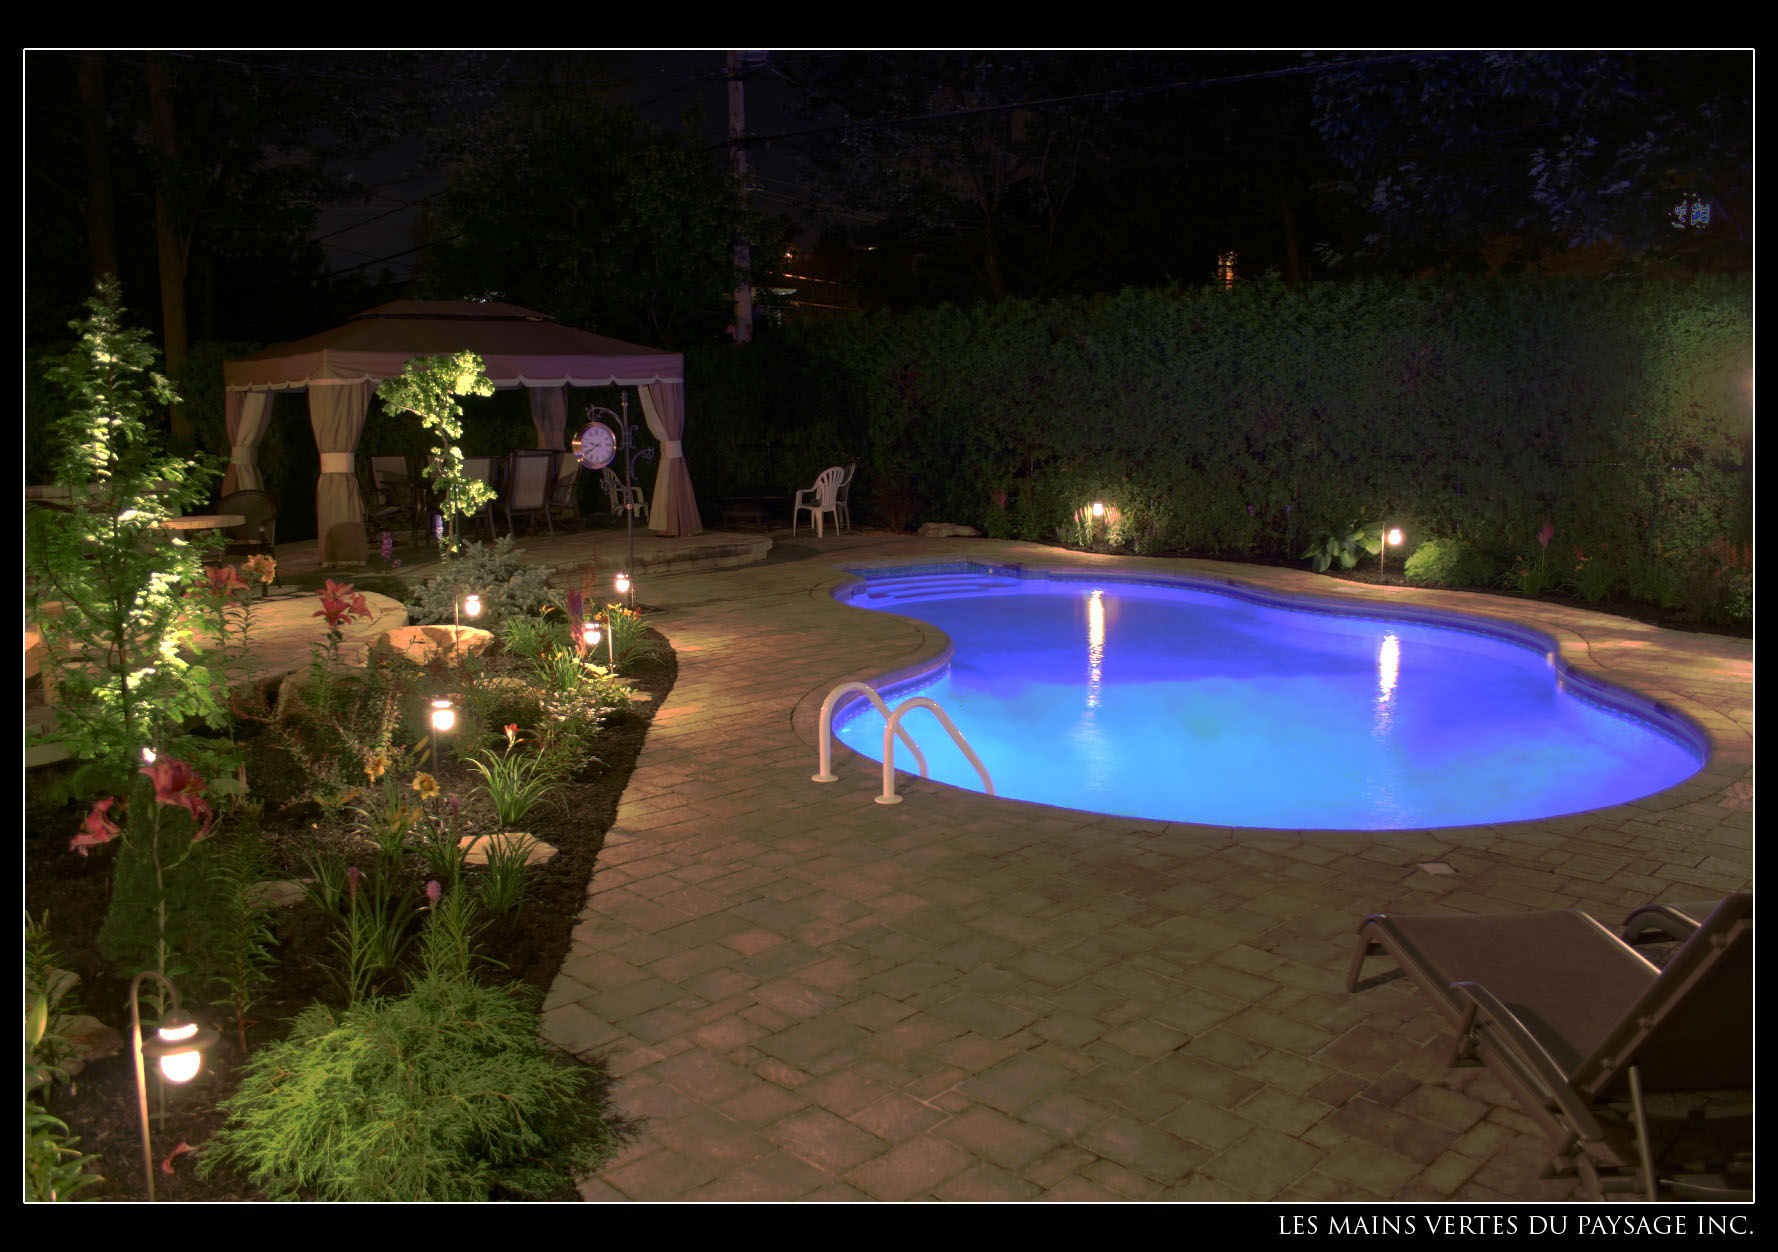 Concept piscine design enr qu bec qc ourbis for Design piscine